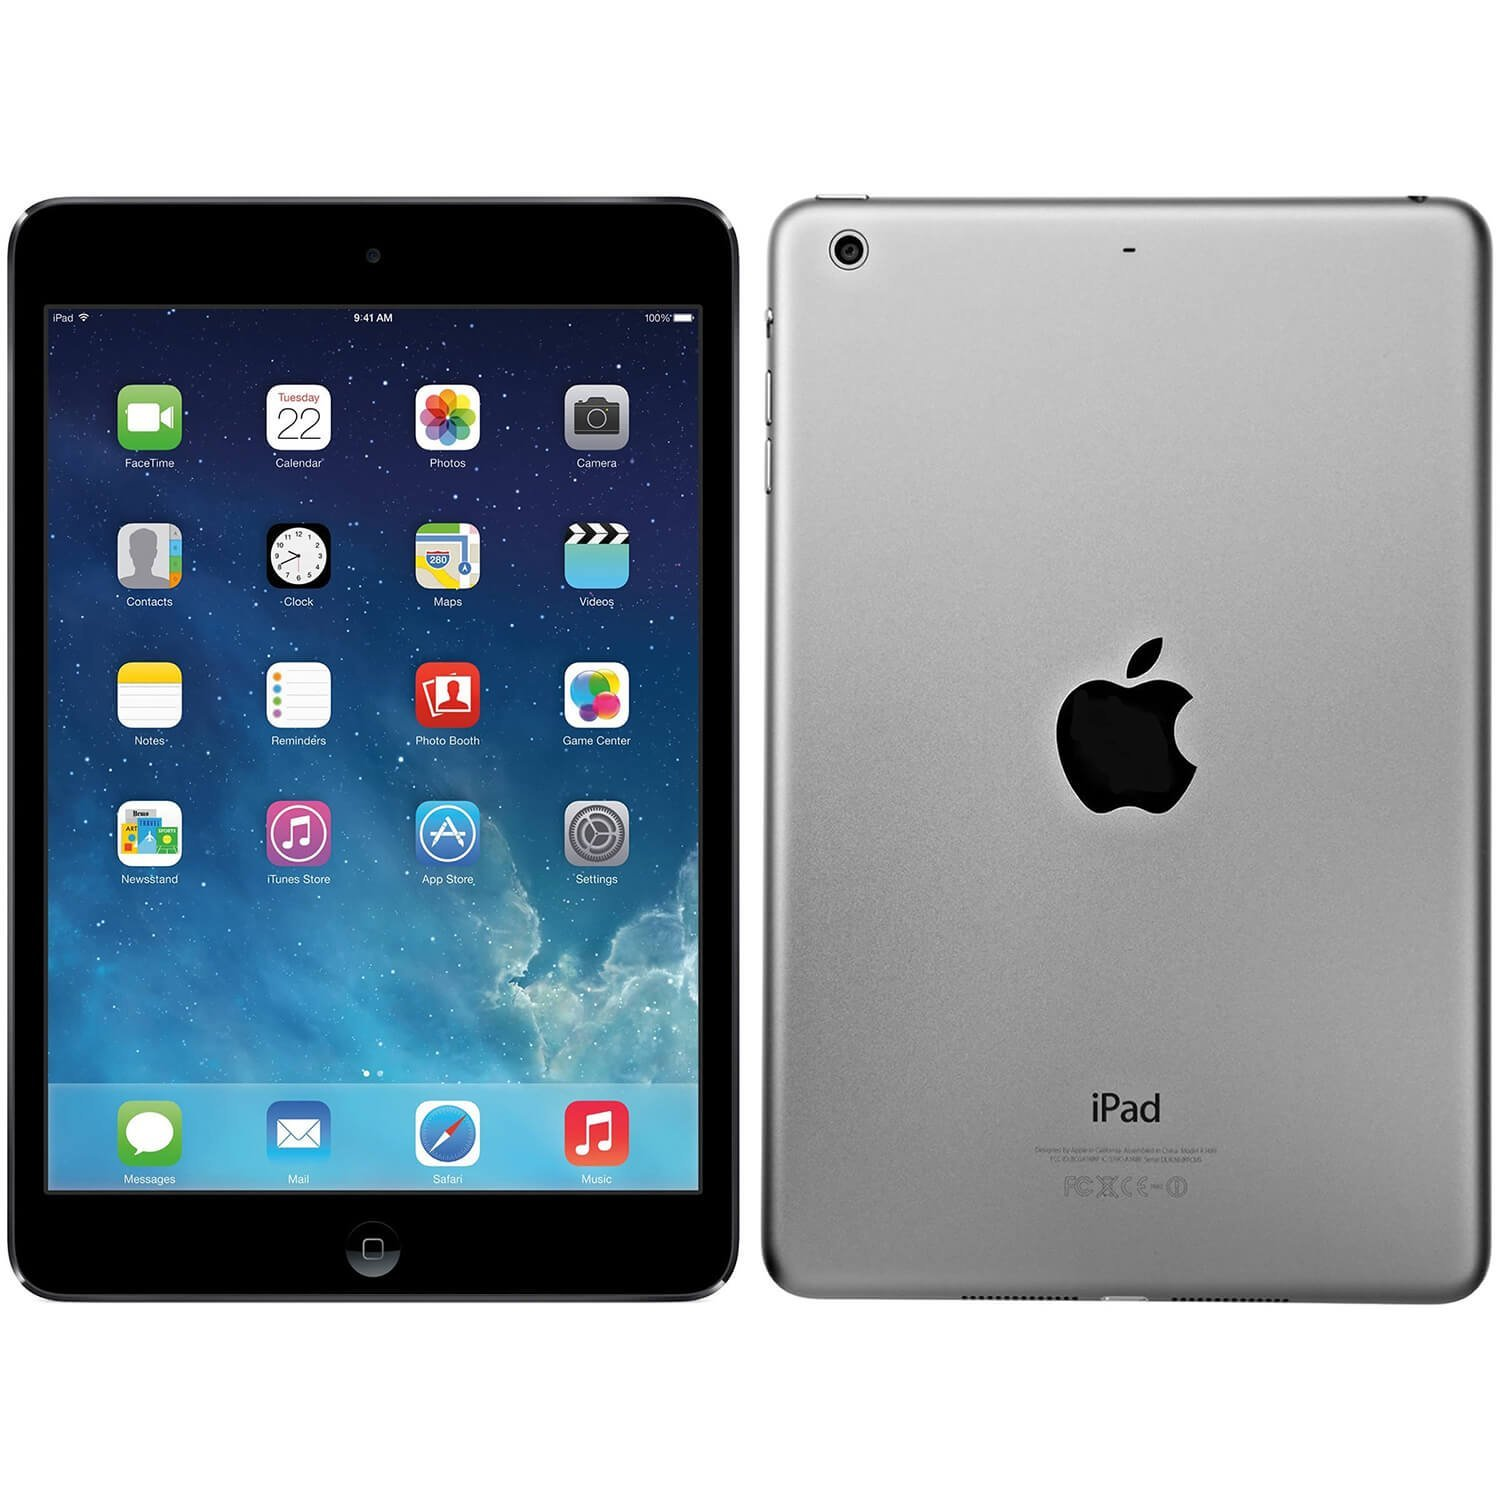 "Refurbished Apple iPad Air WiFi 16GB iOS 7 9.7"" Tablet - MD785LL/A - Space Gray"